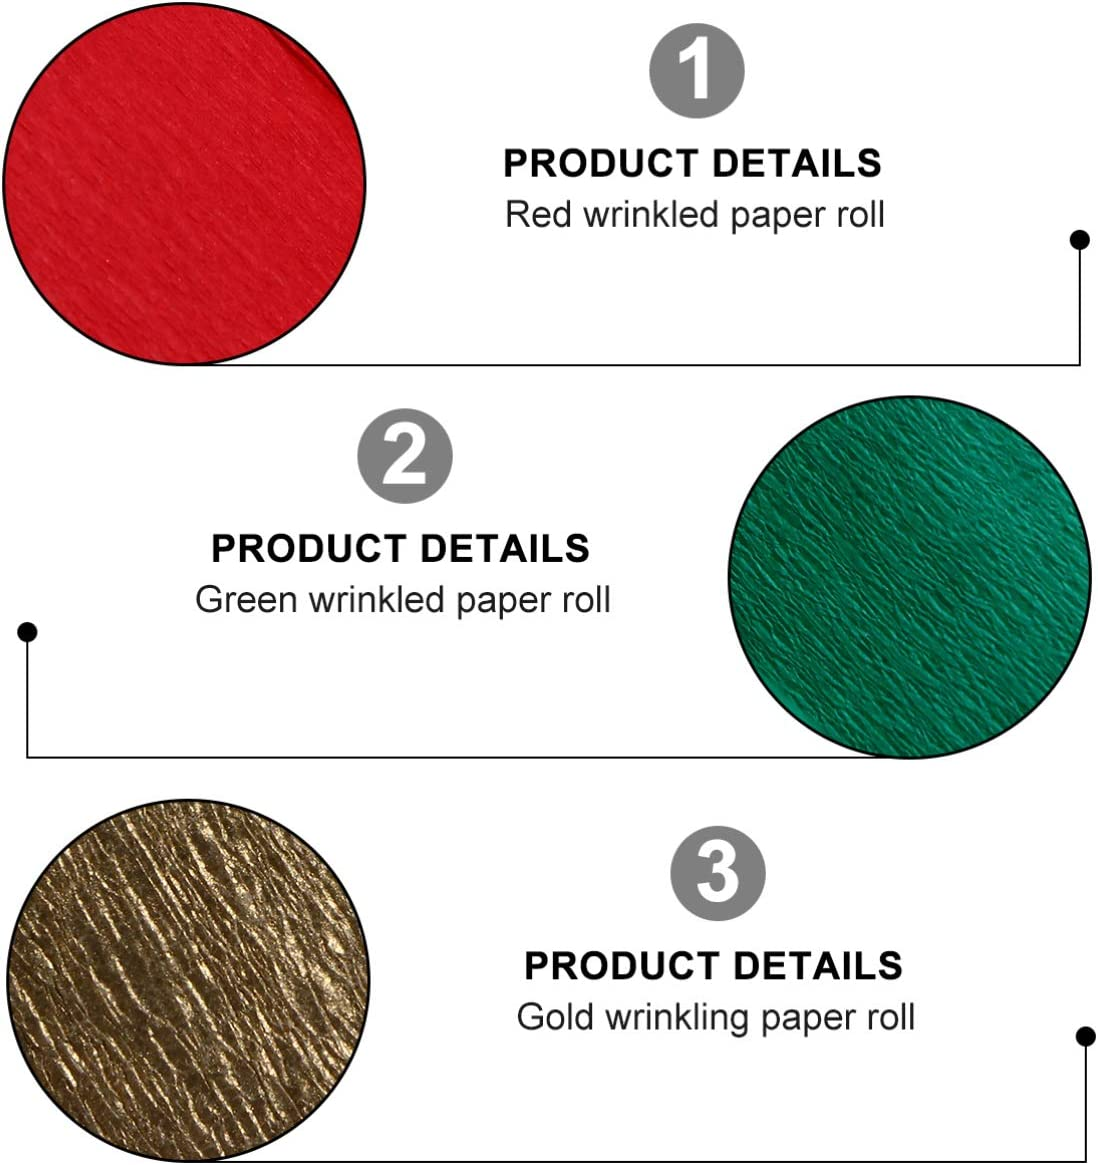 Concert and Various Festivals Ornament Red +Green+Gold EXCEART 9 Rolls Party Streamer Paper Decorations Crepe Paper in 3 Colors Crepe Paper Decors for Christmas,Birthday Party Wedding